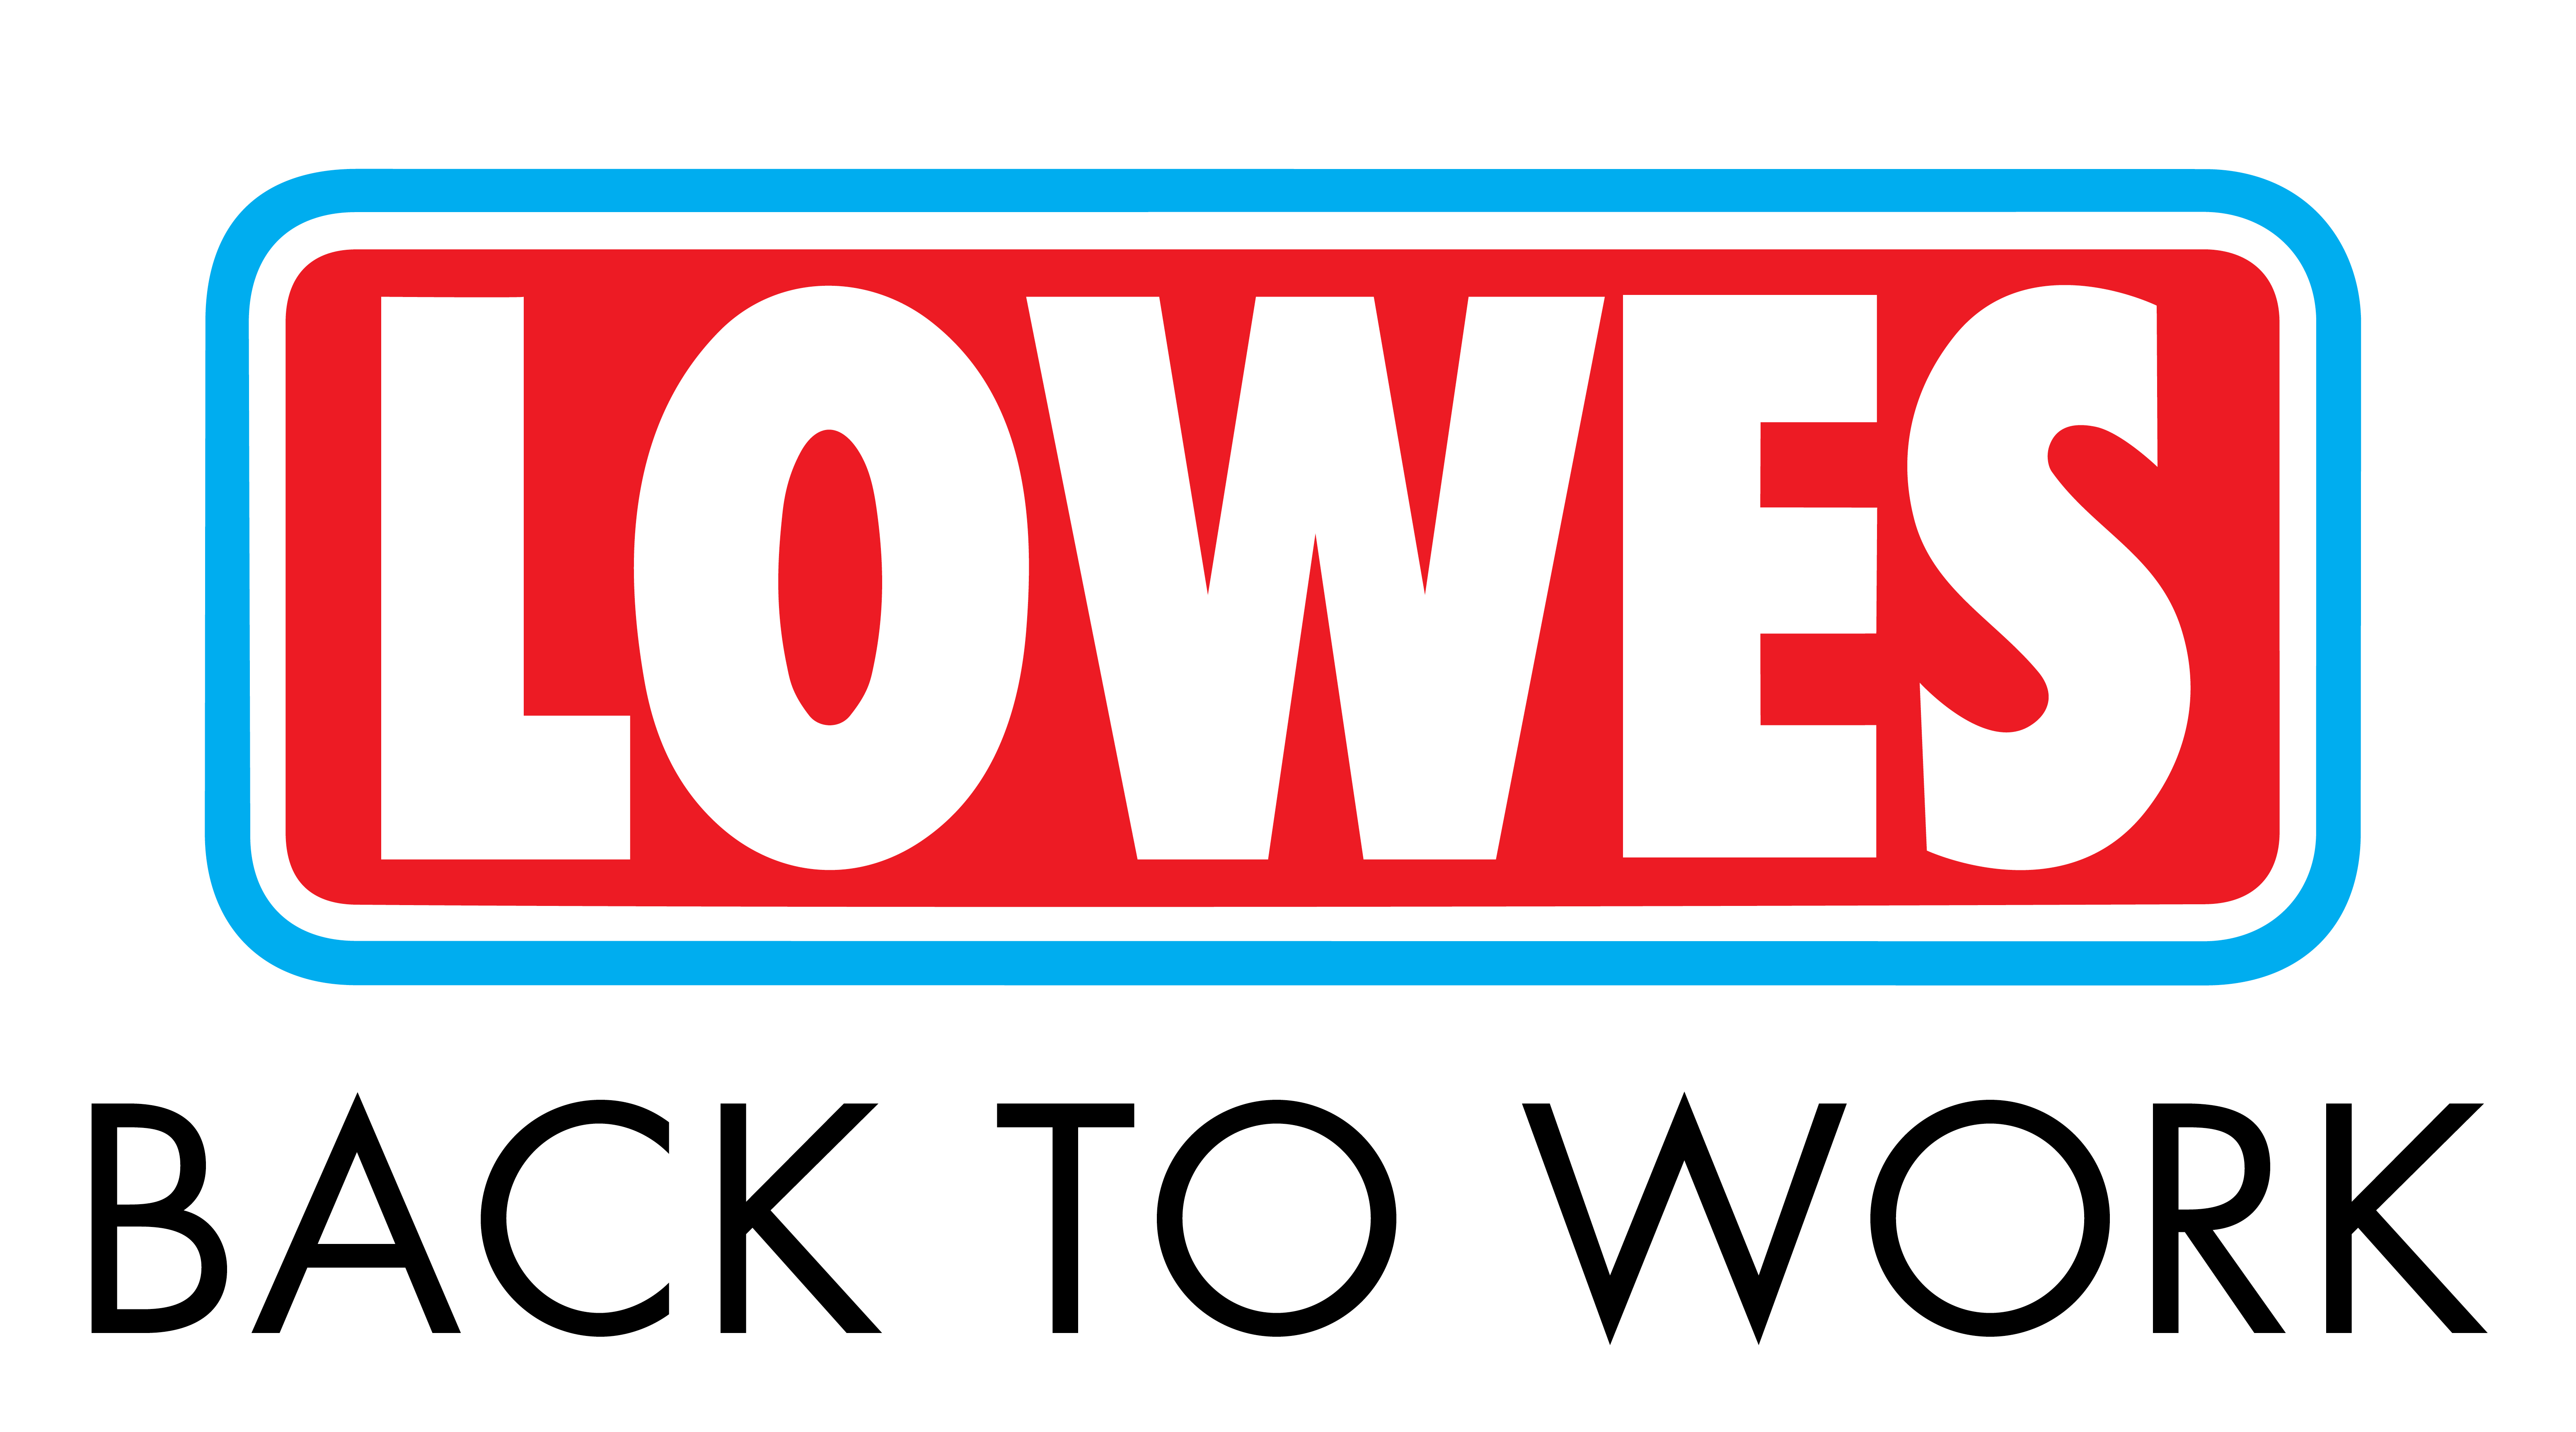 Lowes Backtowork Logo hi res cropped - NESA Industry Partners